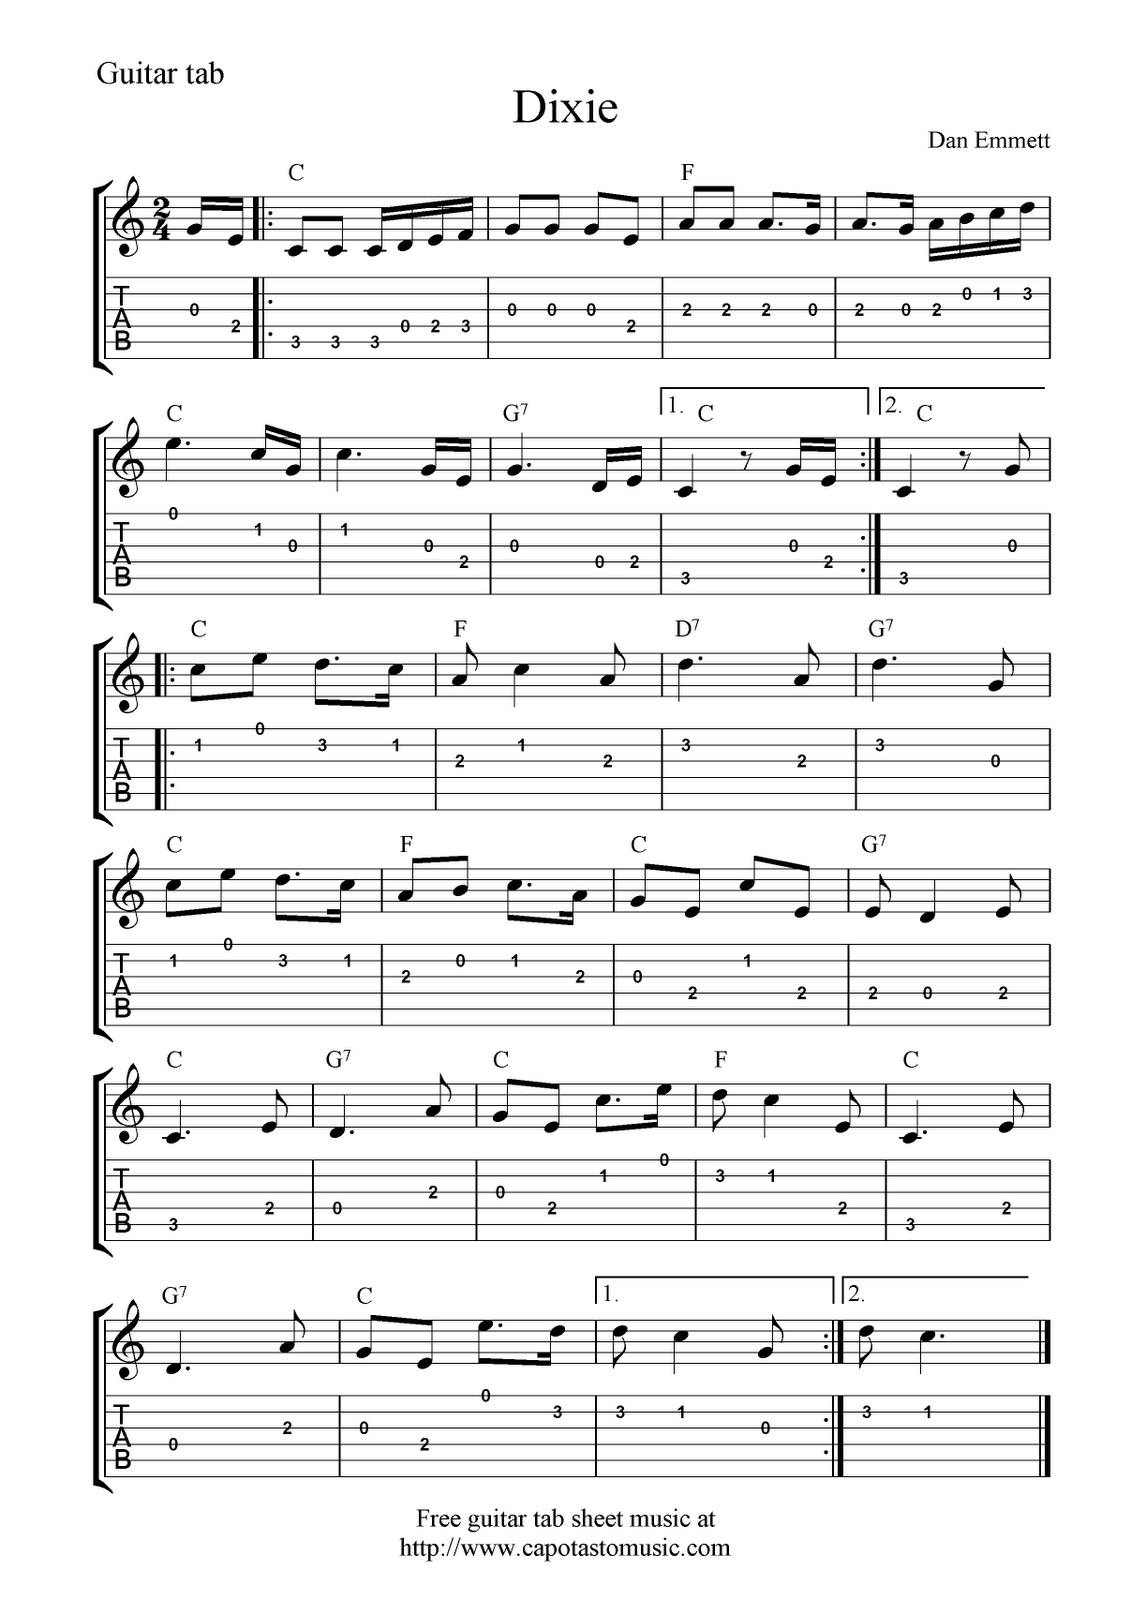 Guitar Music Sheets For Beginners | Free Guitar Tab Sheet Music - Free Printable Guitar Music